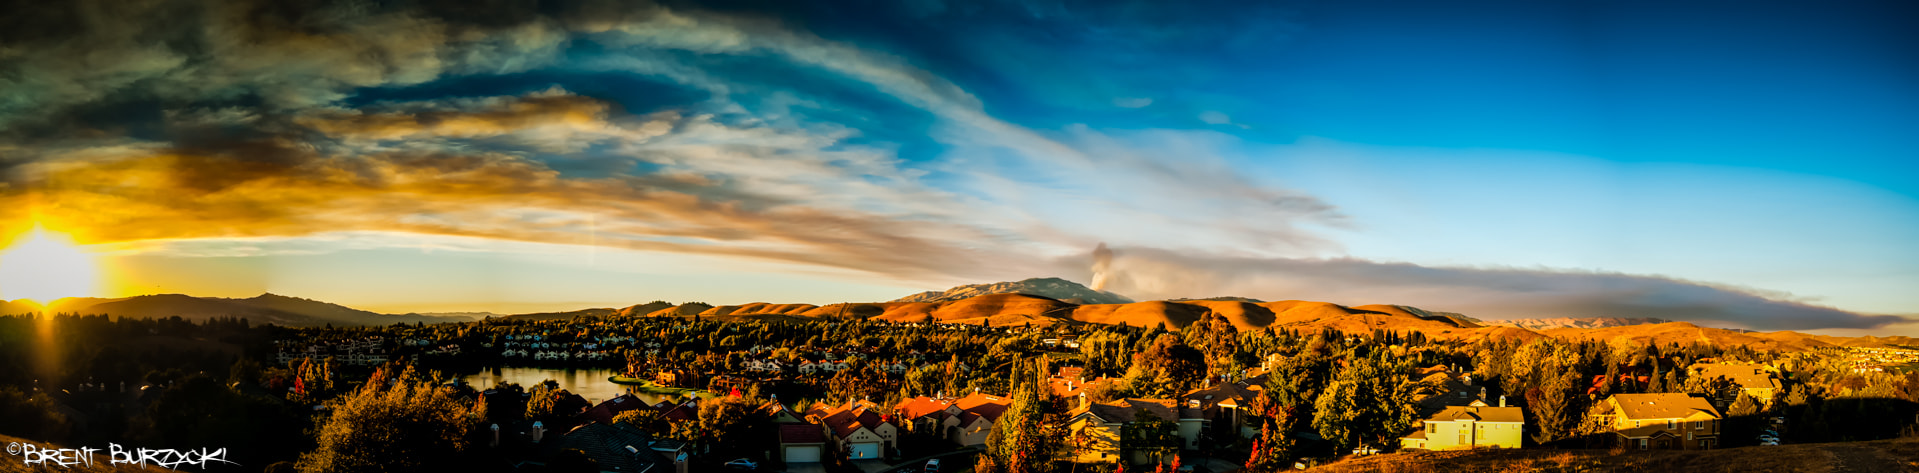 Photograph Mount Diablo Wildfire Pano by Brent Burzycki on 500px